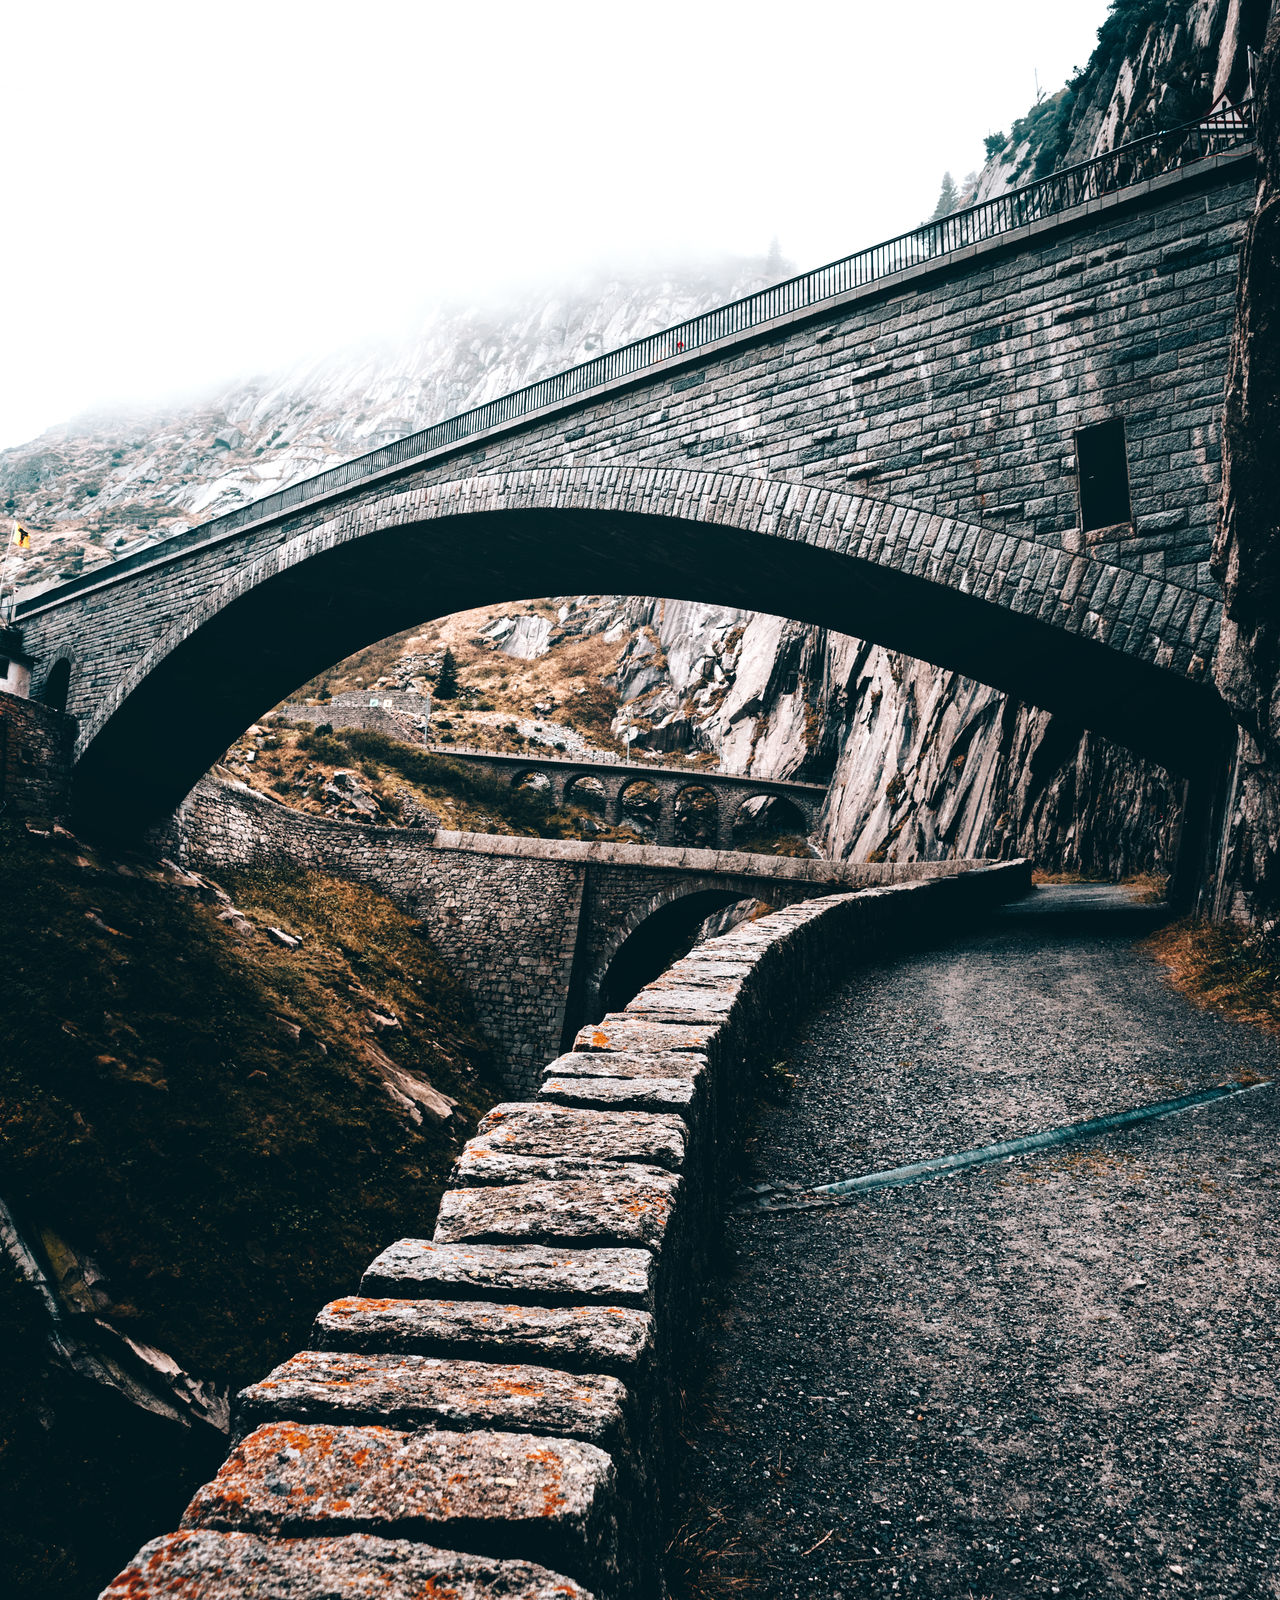 The Devil's Bridges over the Schöllenen Gorge in Andermatt, Switzerland. Alps Andermatt  Autumn Bridge Bridges Brücke Brücken Close-up Devil's Bridge Exploring Fall Focus On Foreground Foggy Hi Leading Lines Mist Mood Road Schweiz Switzerland Switzerlandpictures Teufelsbrücke Travel